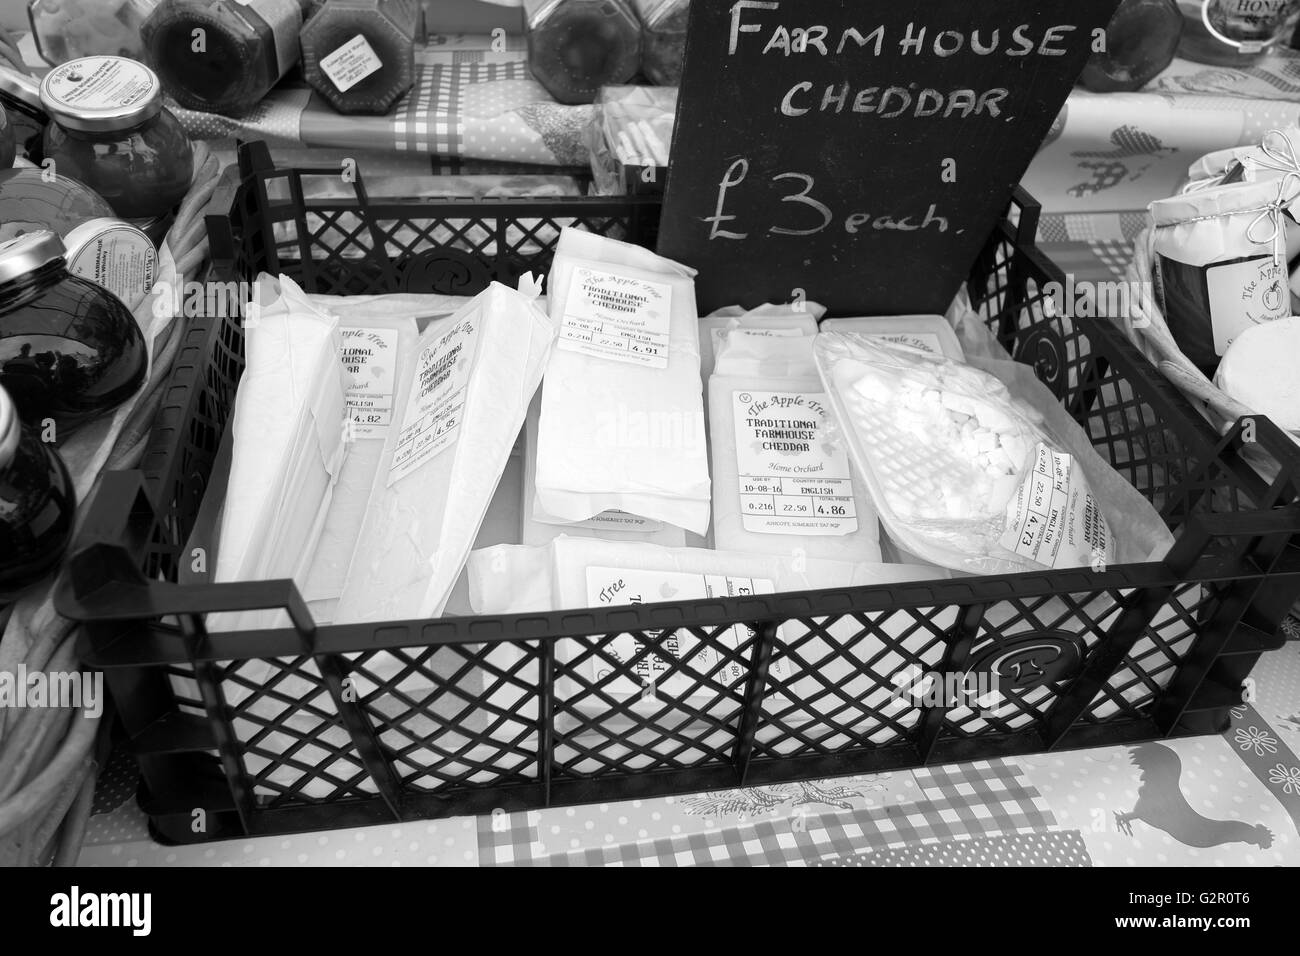 Farmhouse Cheddar cheeses and pickles for sale in Wells market. May 2016 - Stock Image